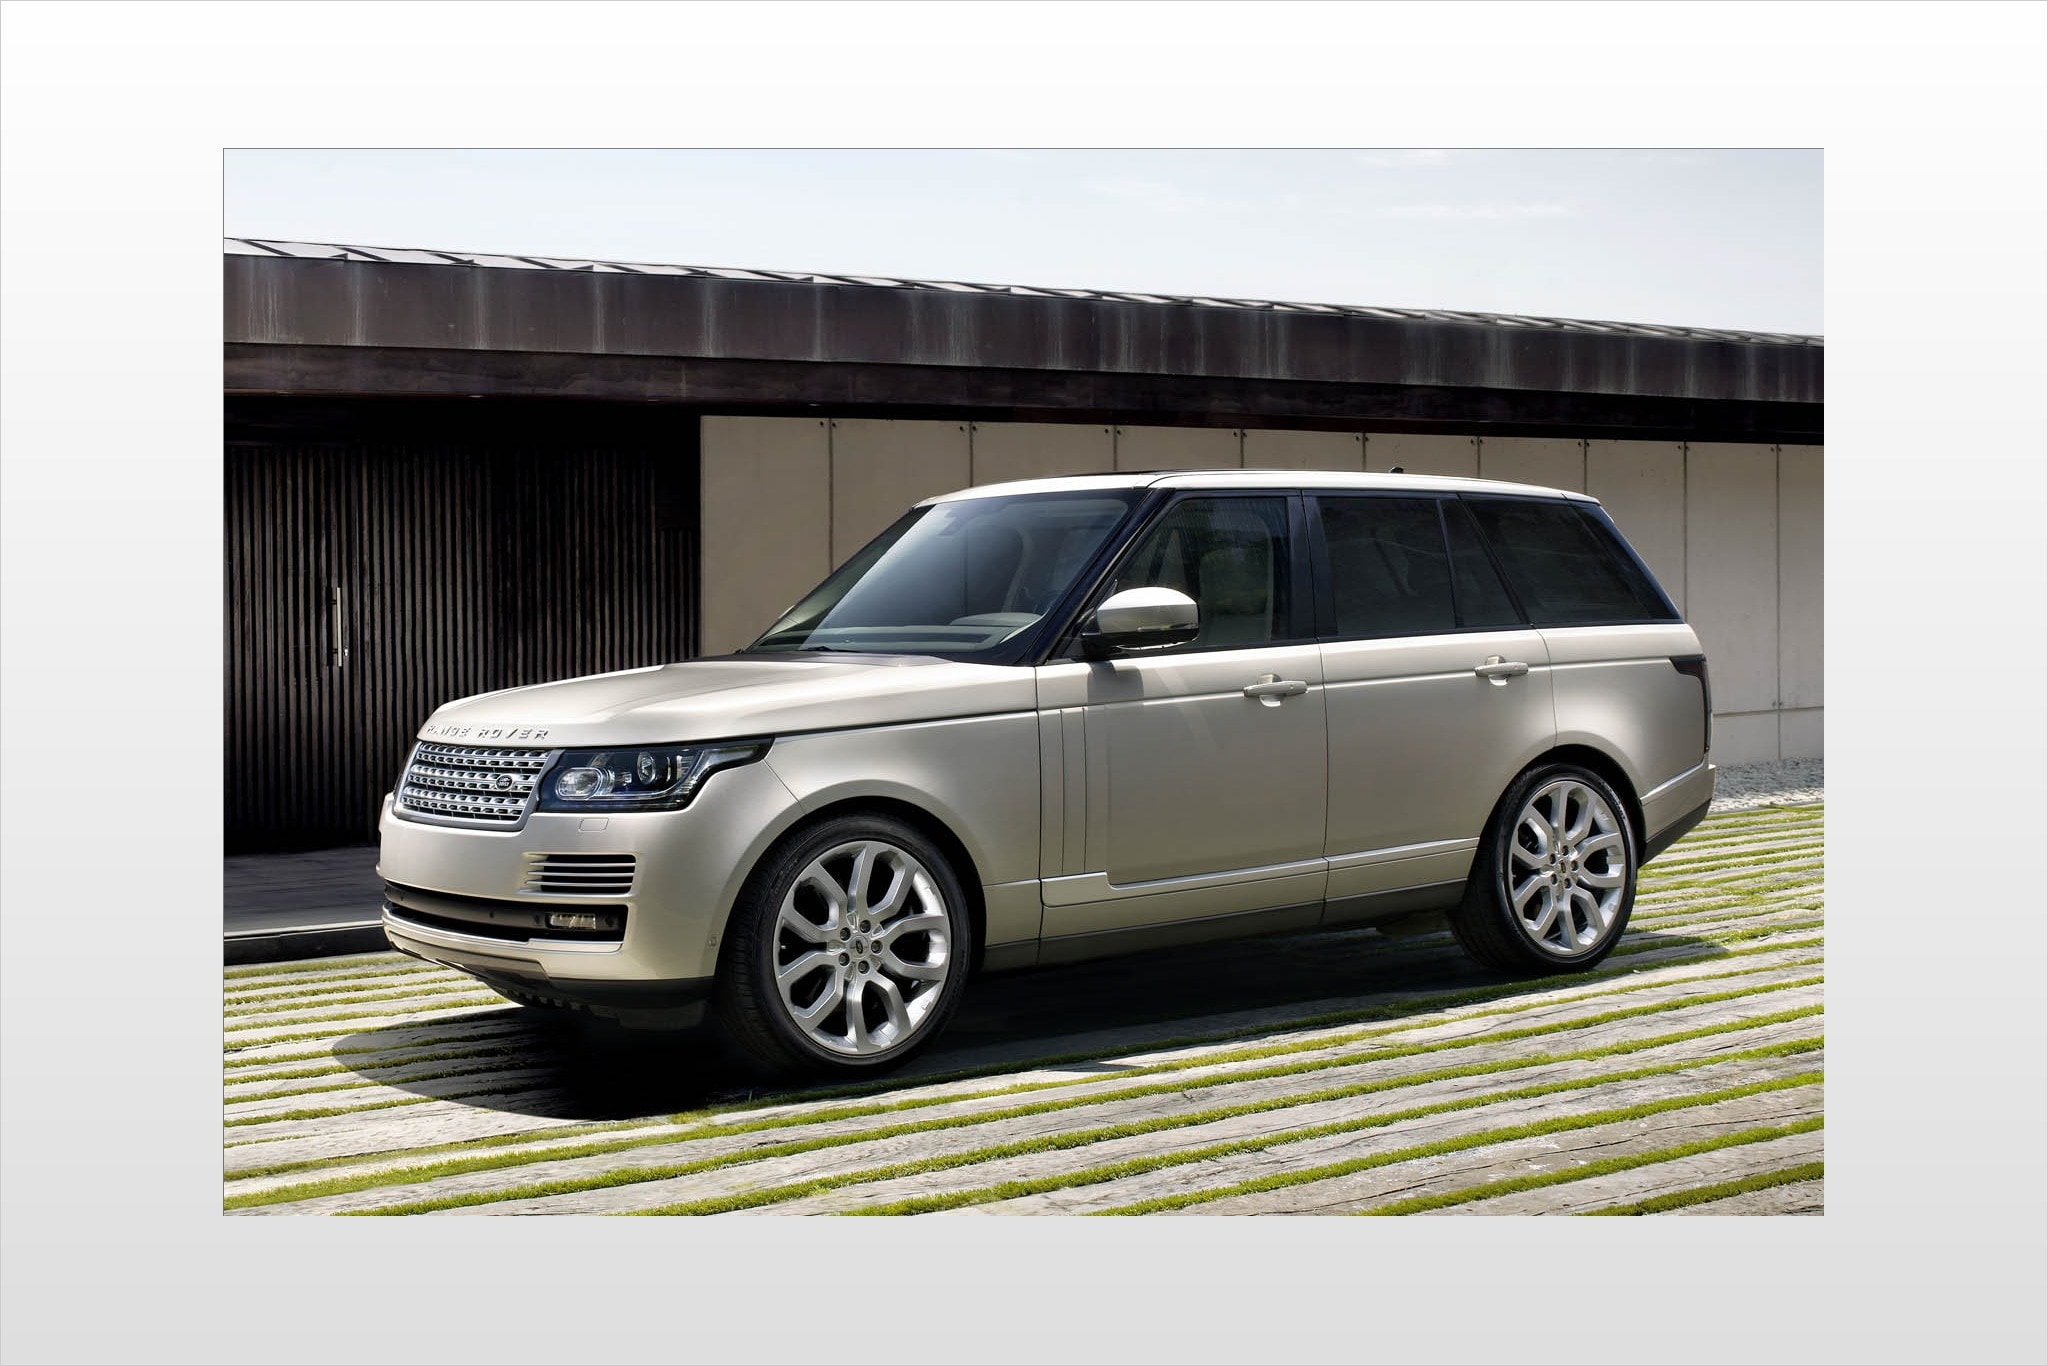 Maintenance Schedule for 2014 Land Rover Range Rover